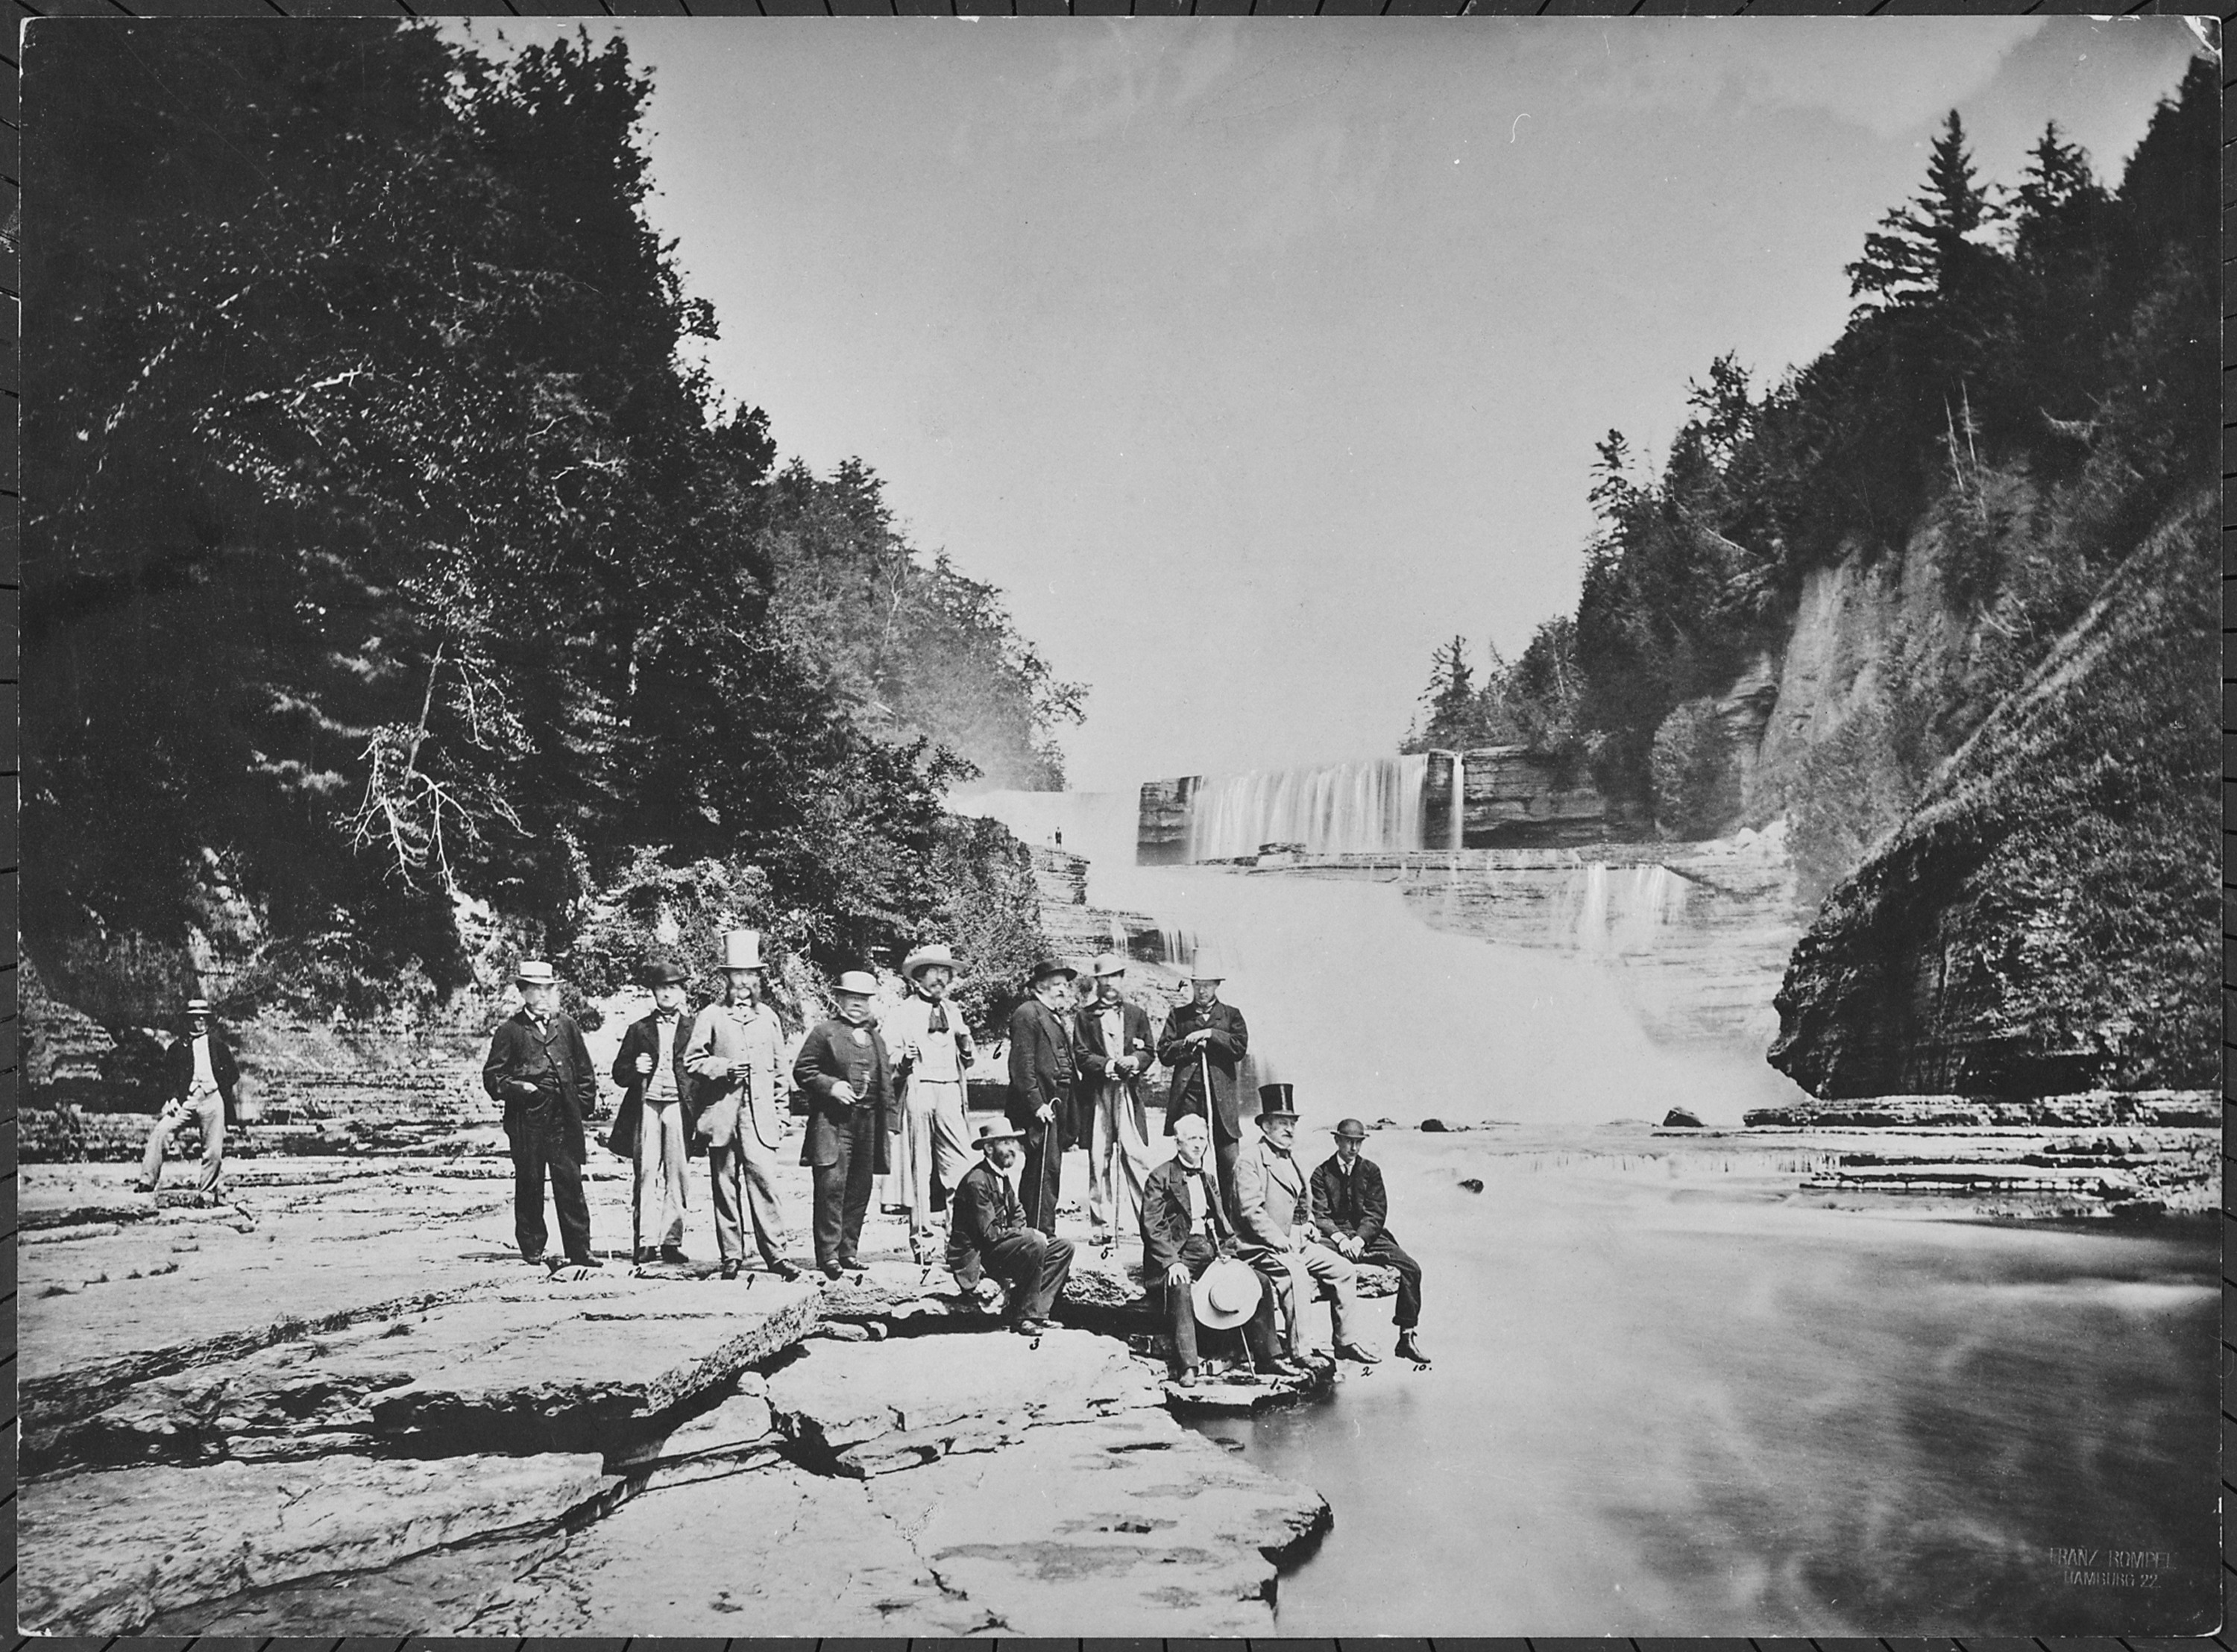 Diplomats at the foot of an unidentified waterfall, New York State, 08-1863 - NARA - 518056.jpg